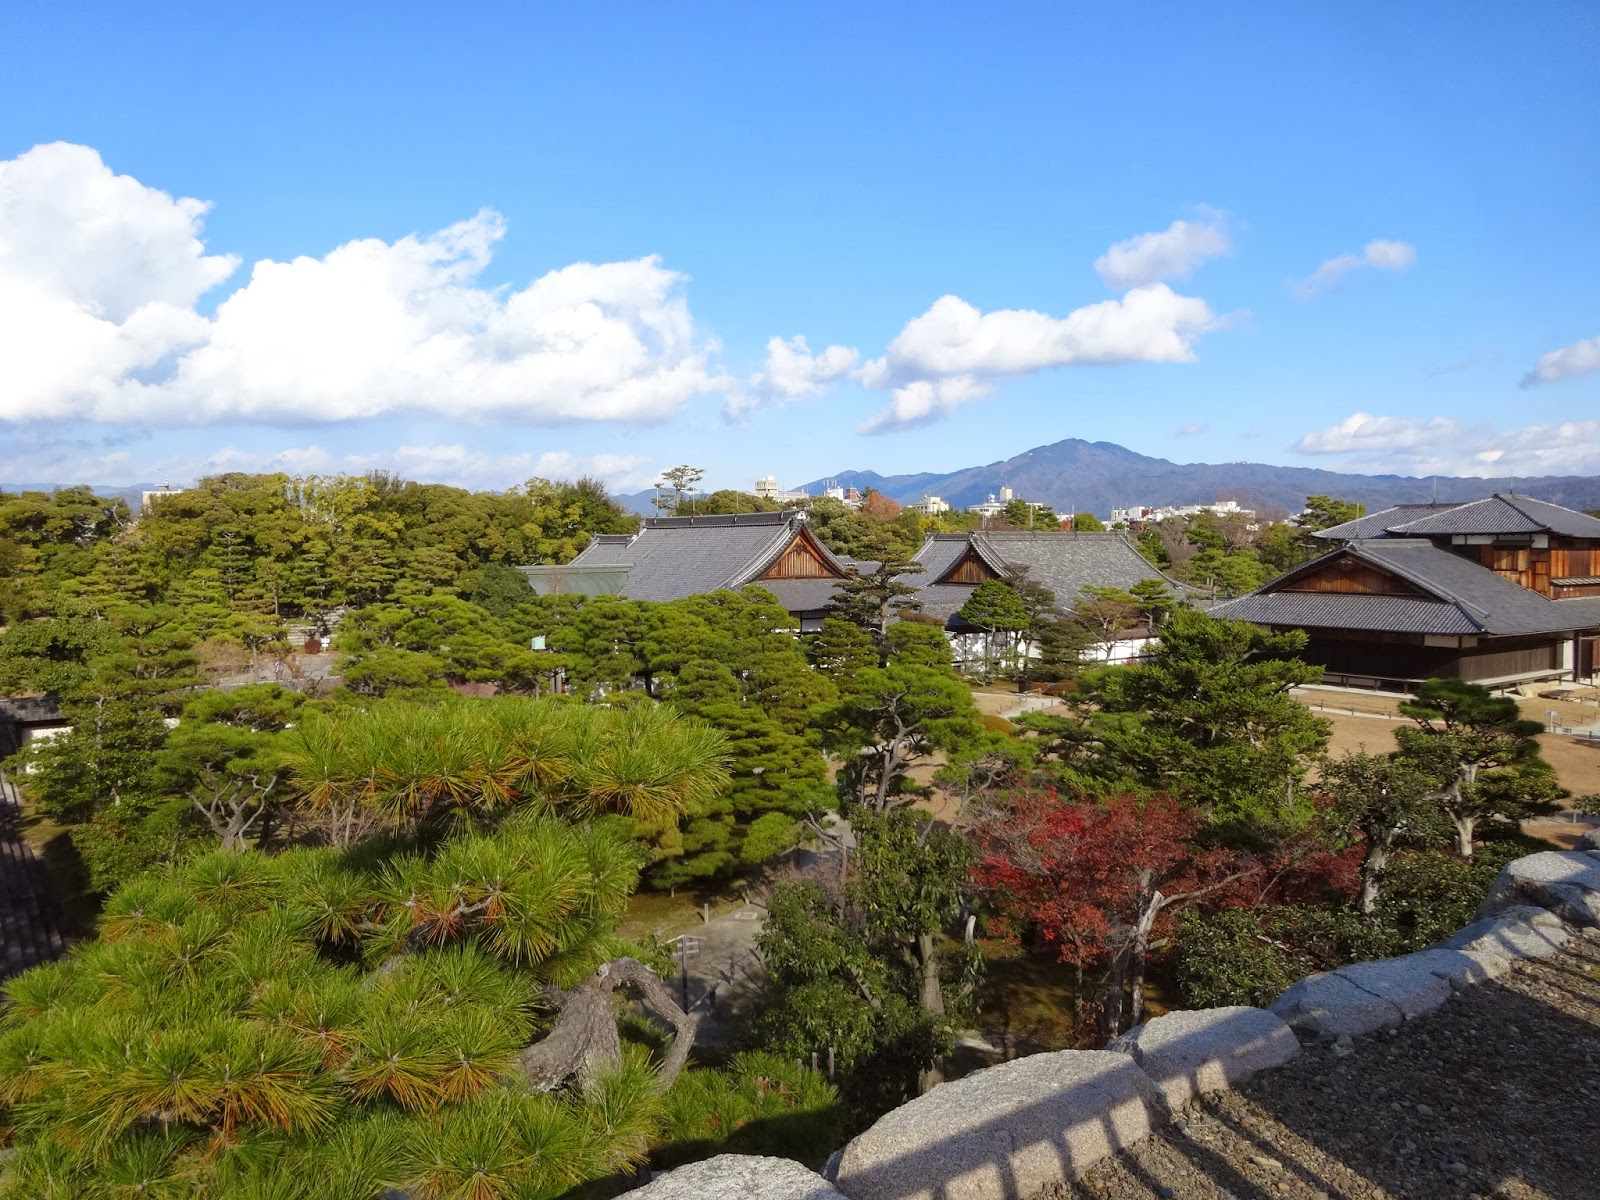 View of Nijo Castle and gardens in Kyoto